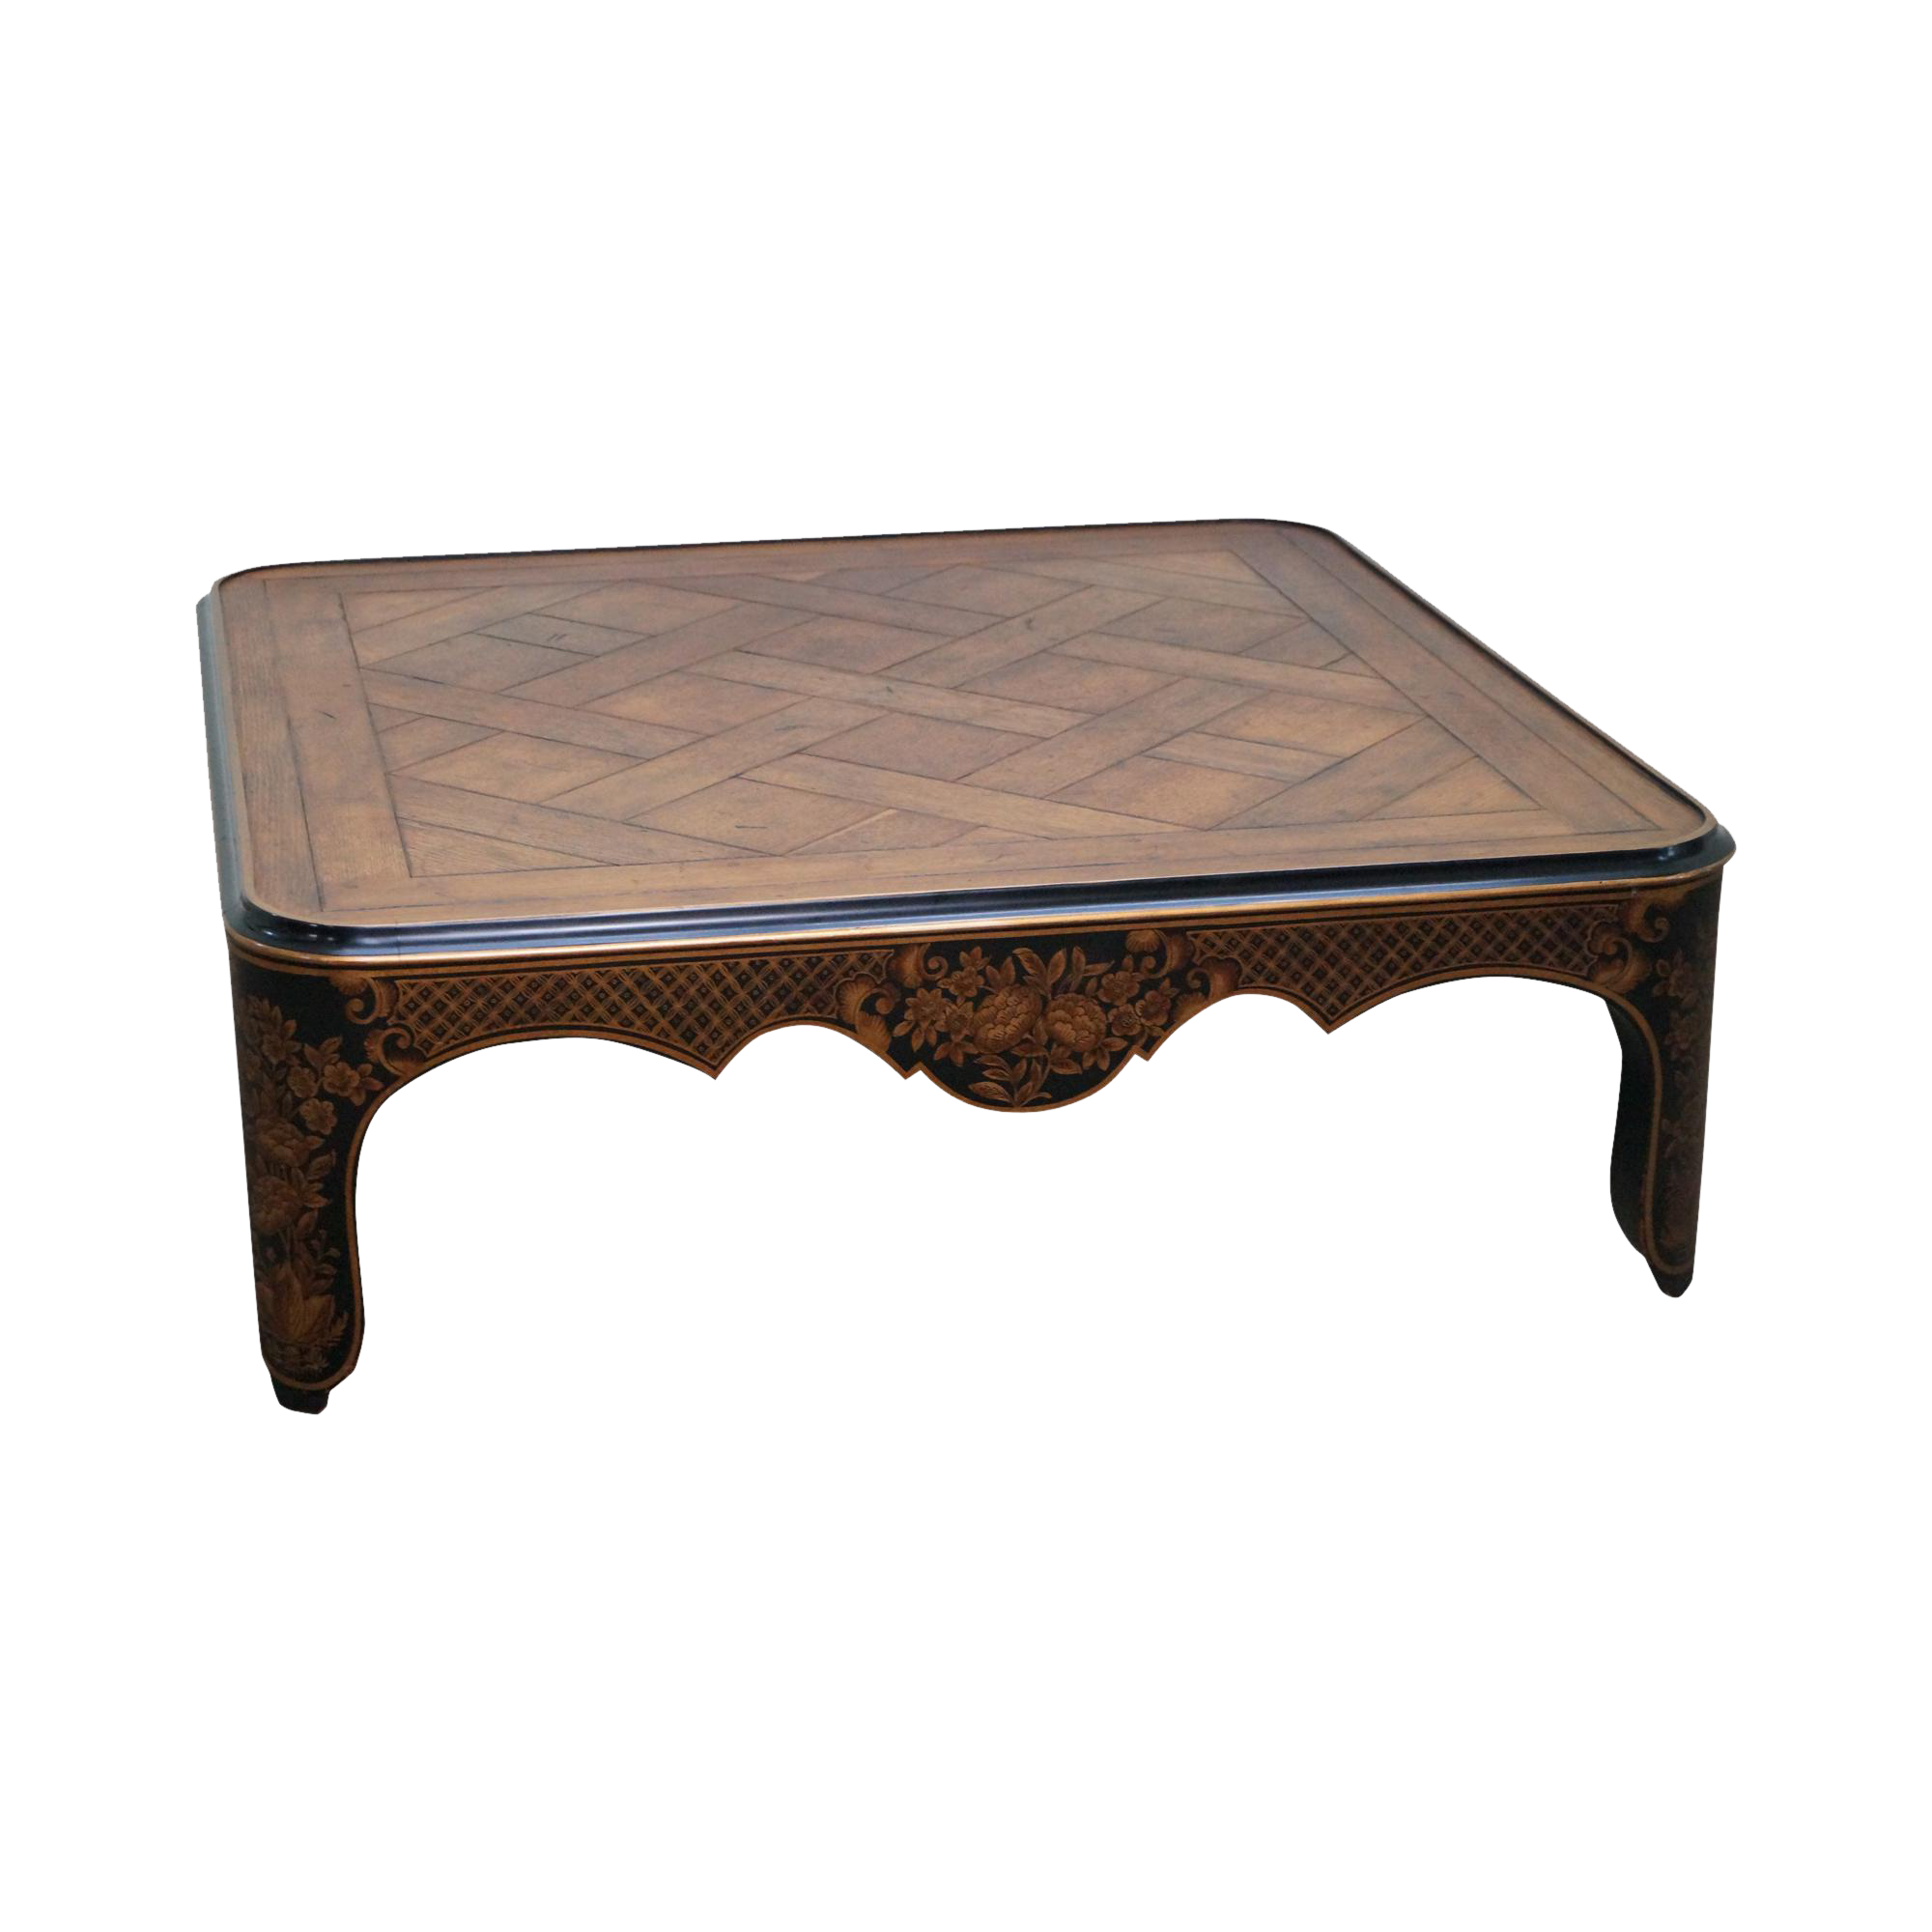 Image Of Baker Chinoiserie Painted Parquet Top Square Coffee Table